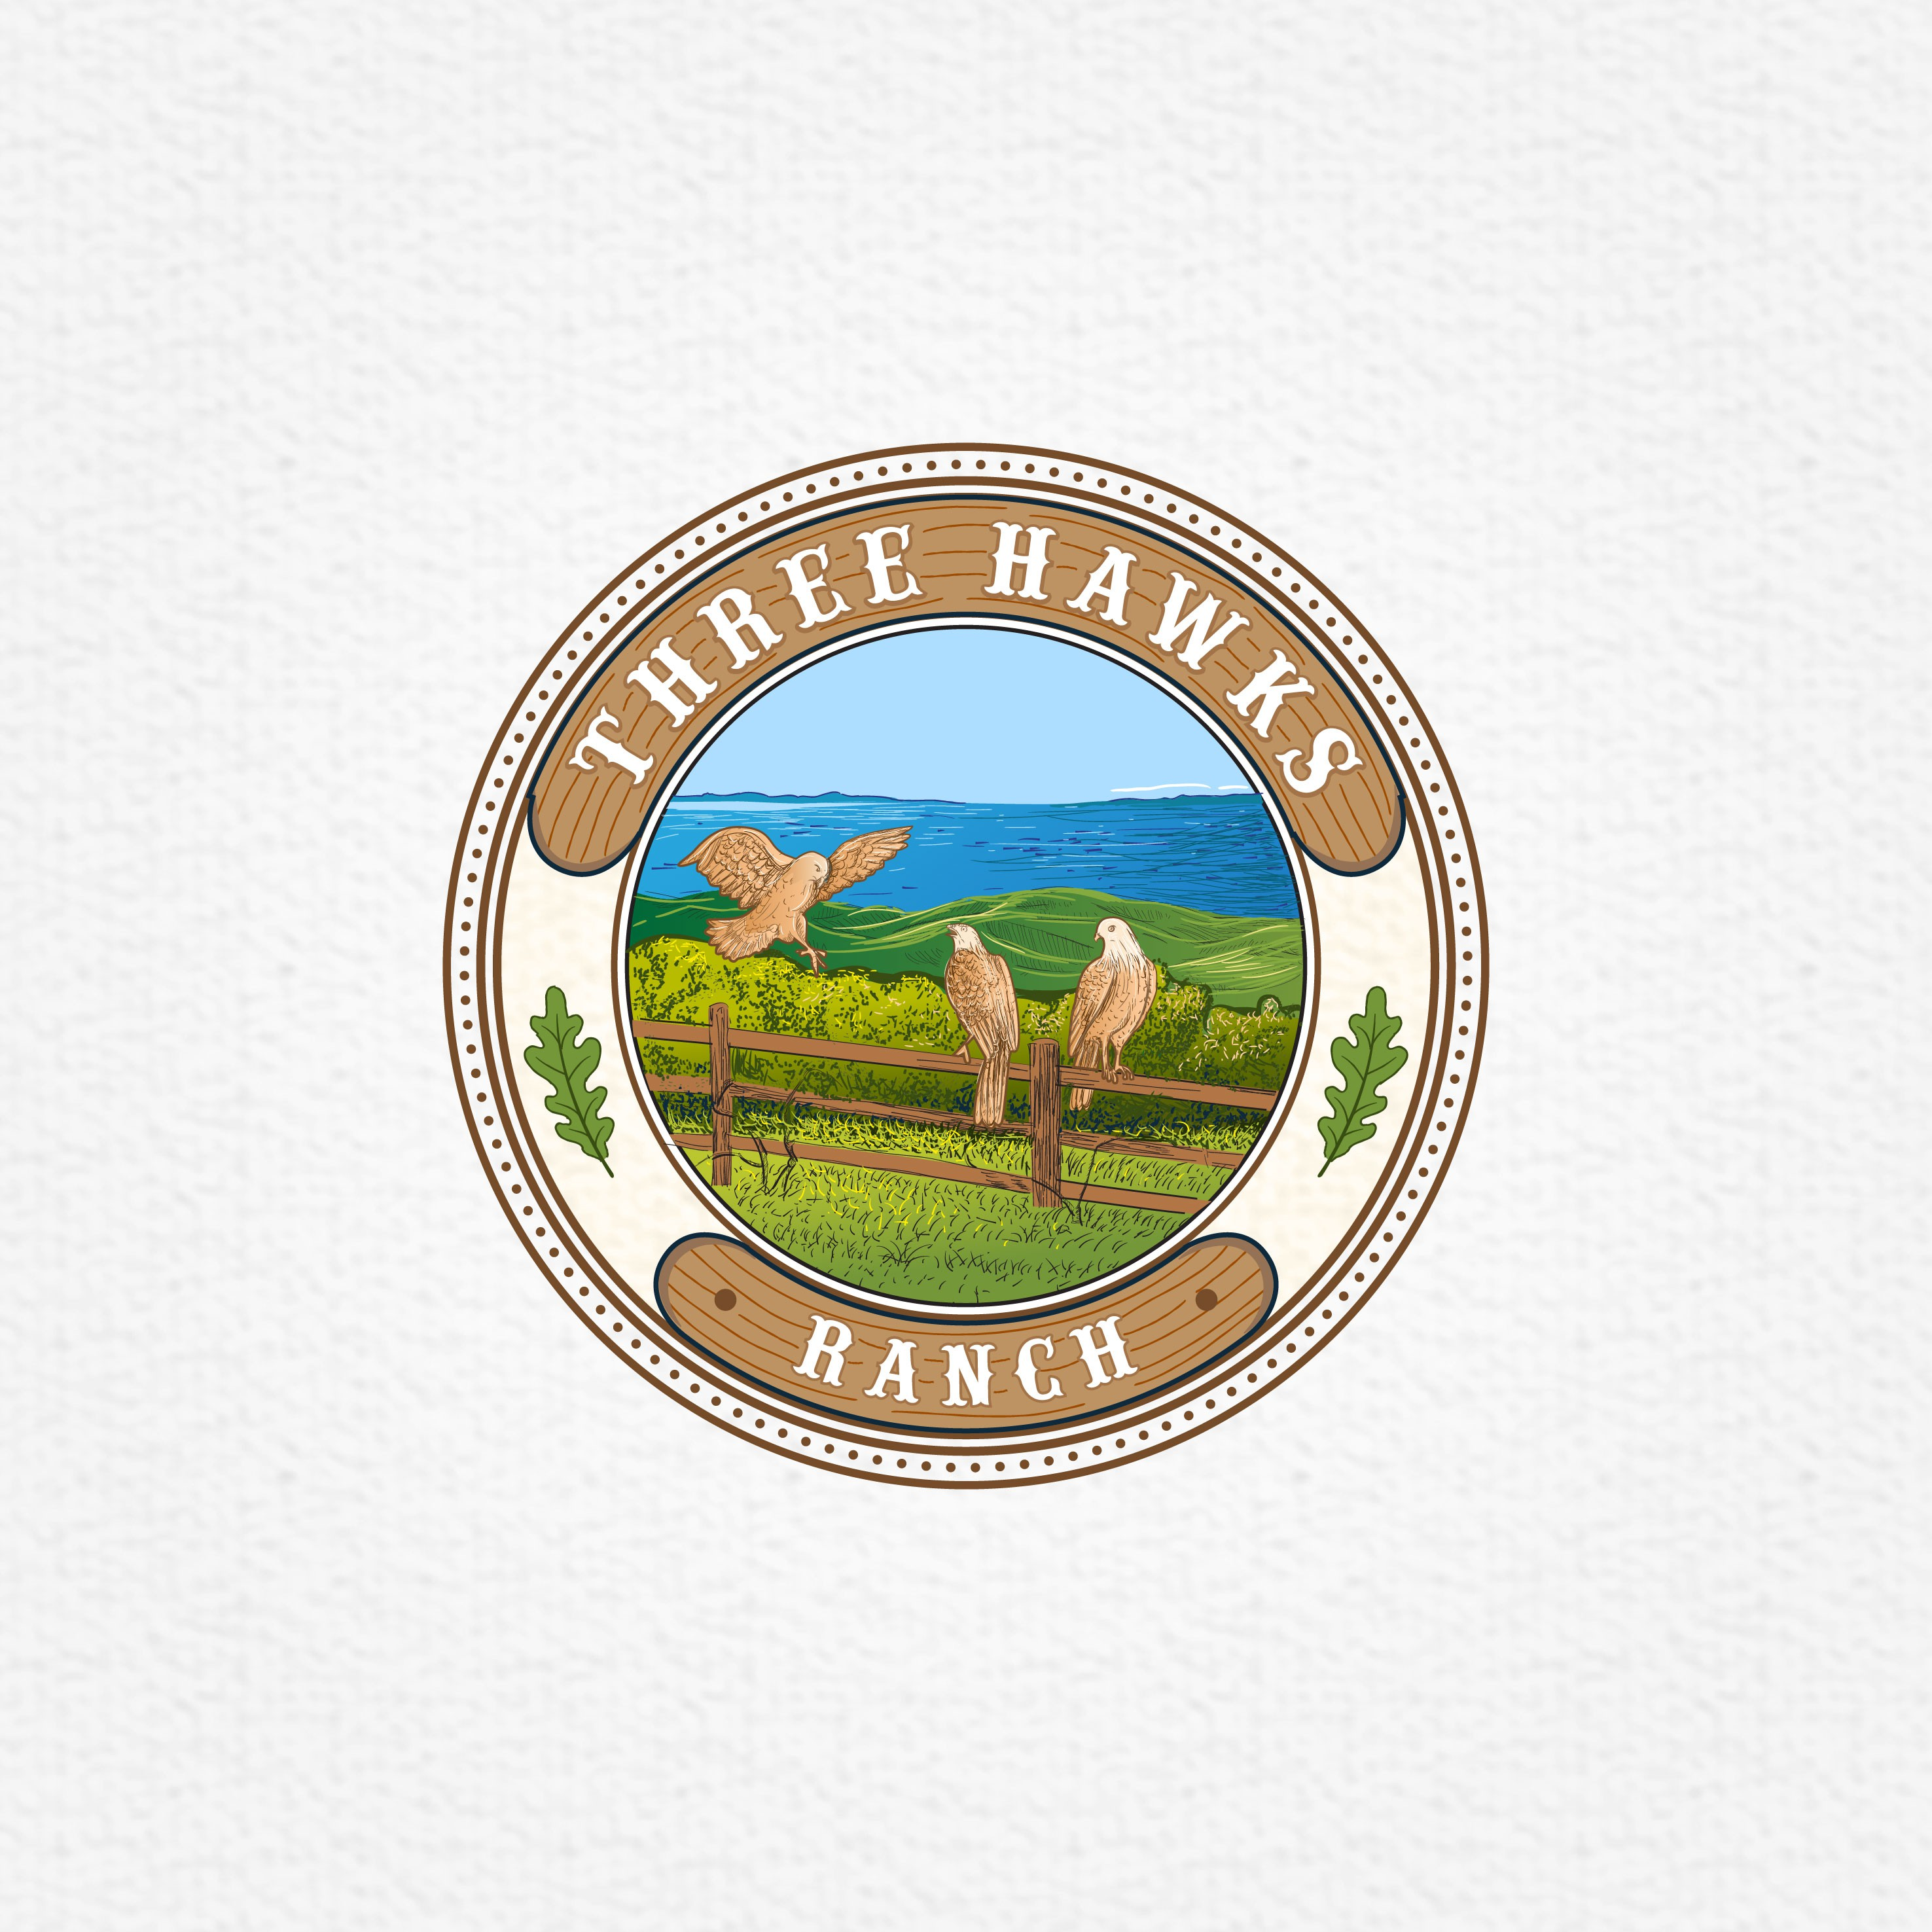 Three Hawks Ranch, my three daughters' favorite place, needs a gorgeous logo!